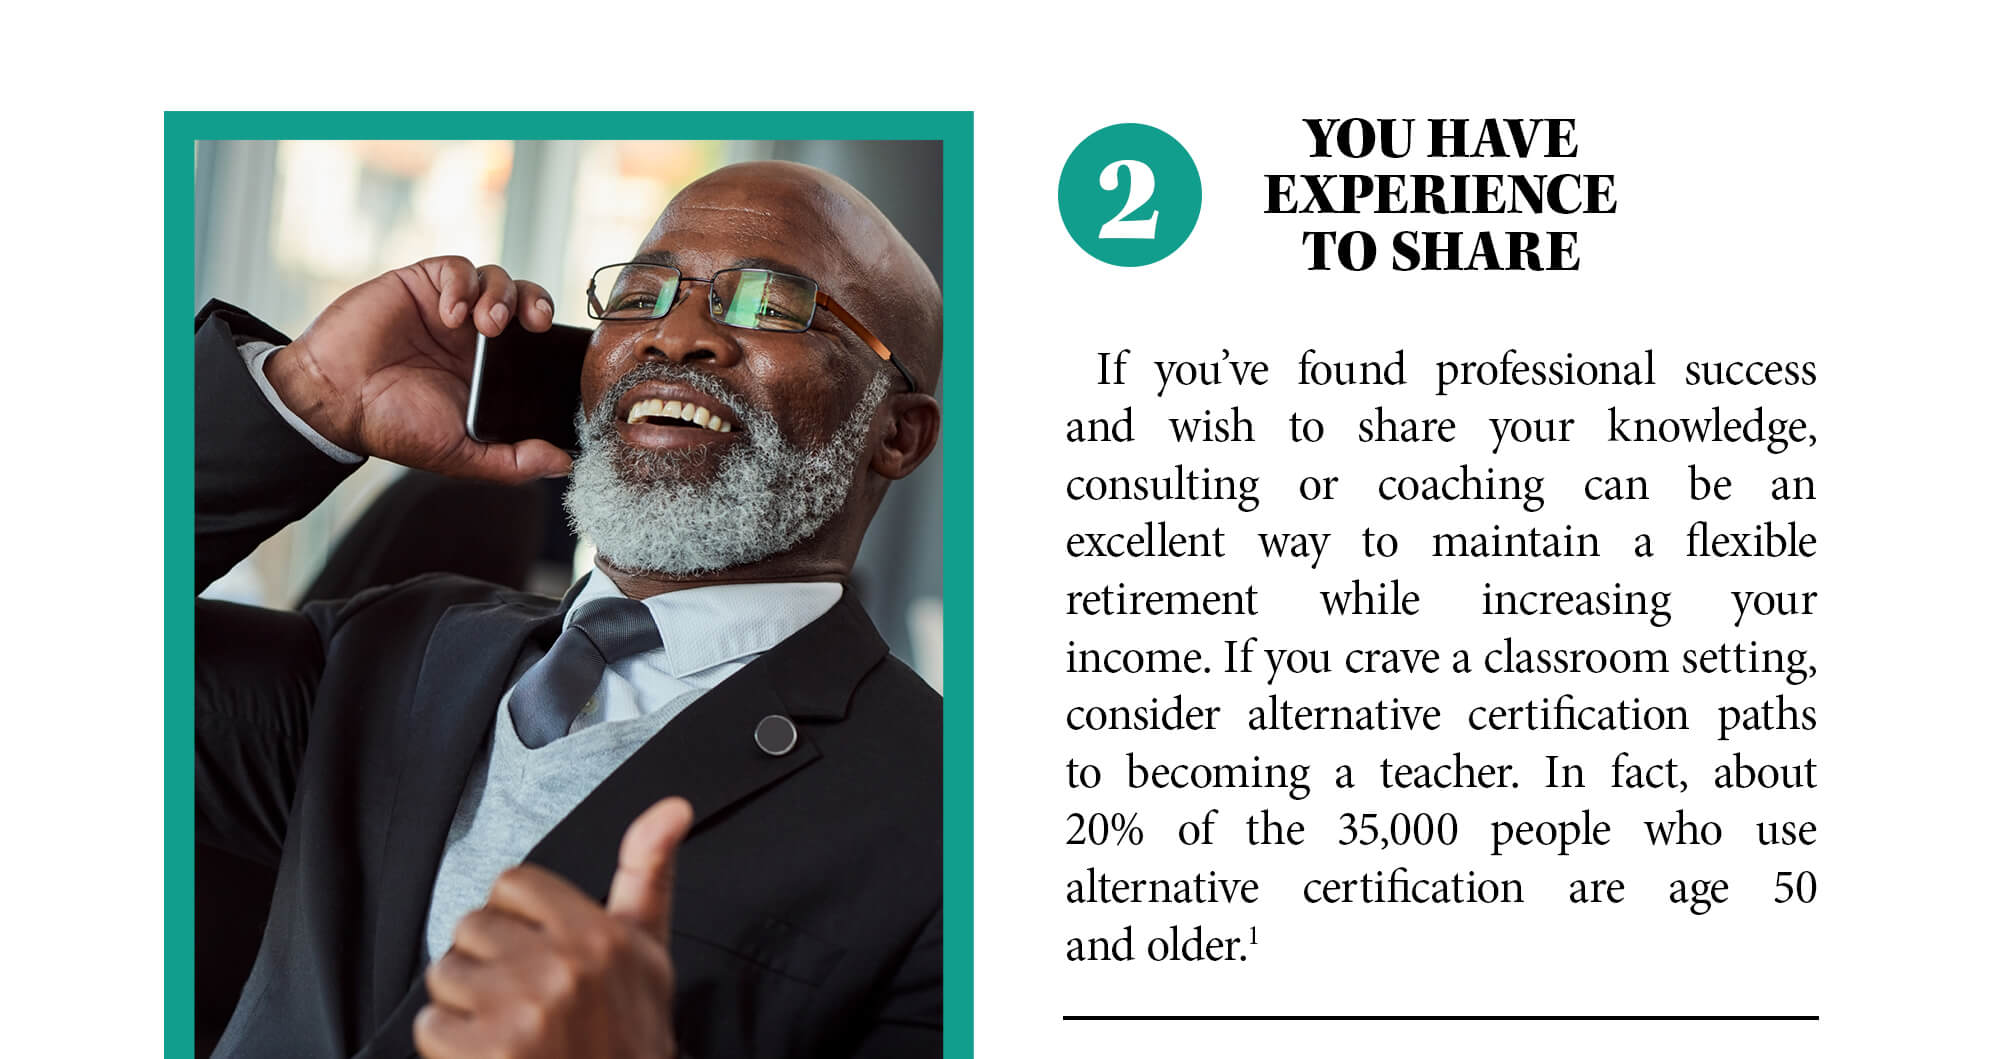 2. You have experience to share. If you've found professional success and wish to share your knowledge, consulting or coaching can be an excellent way to maintain a flexible retirement while increasing your income. If you crave a classroom setting, consider alternative certification paths to becoming a teacher. In fact, about 20% of the 35,000 people who use alternative certification are age 50 and older. Source 1.